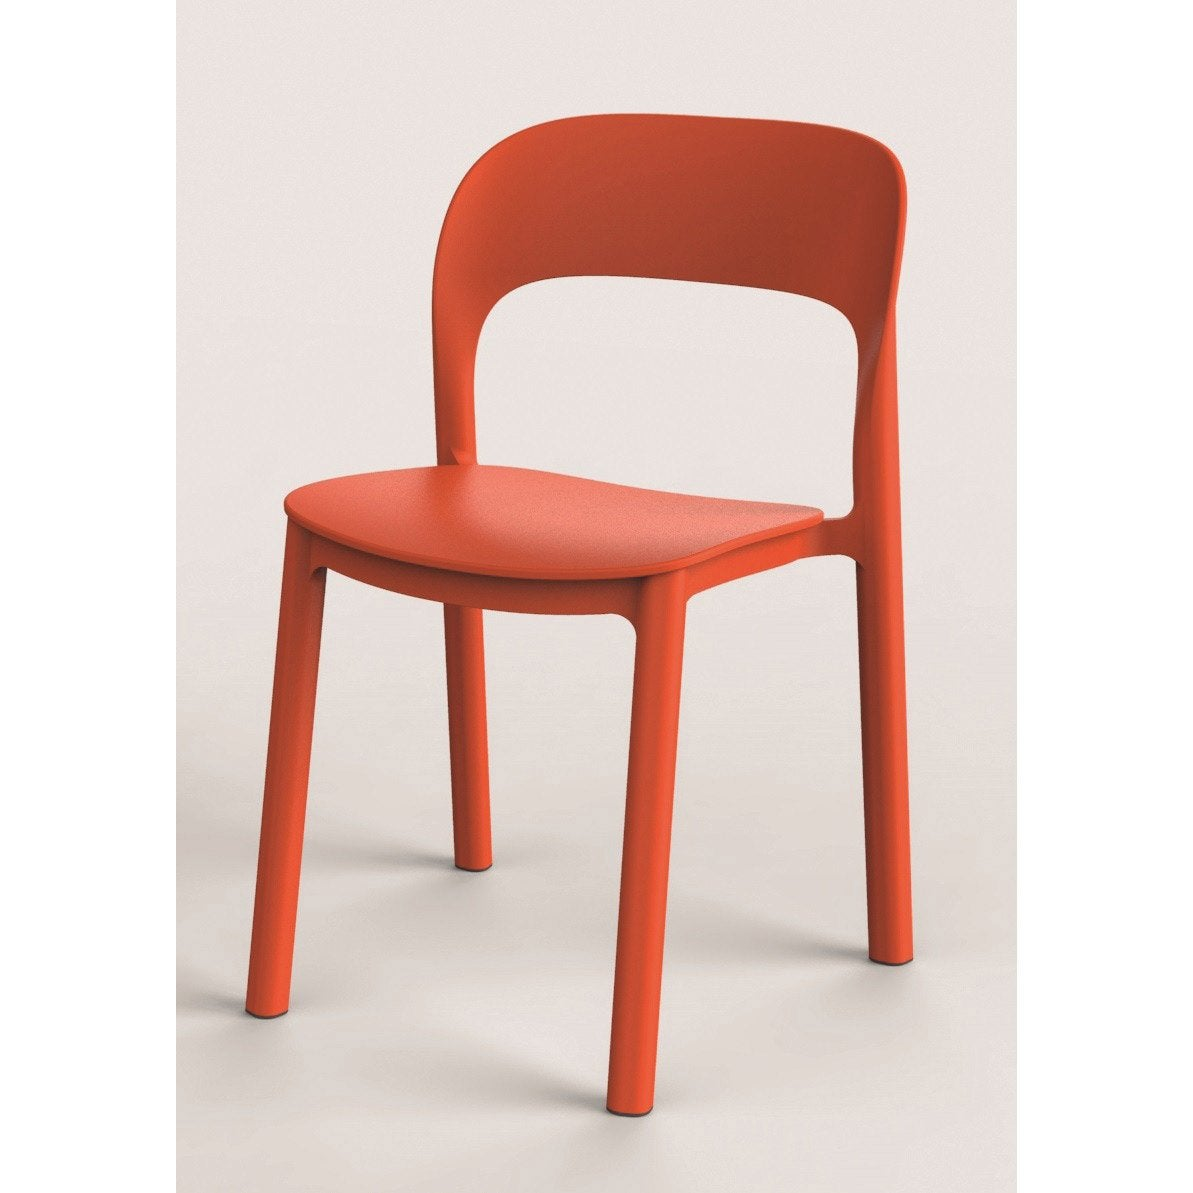 Chaise De Jardin En Resine Injectee Ona Orange